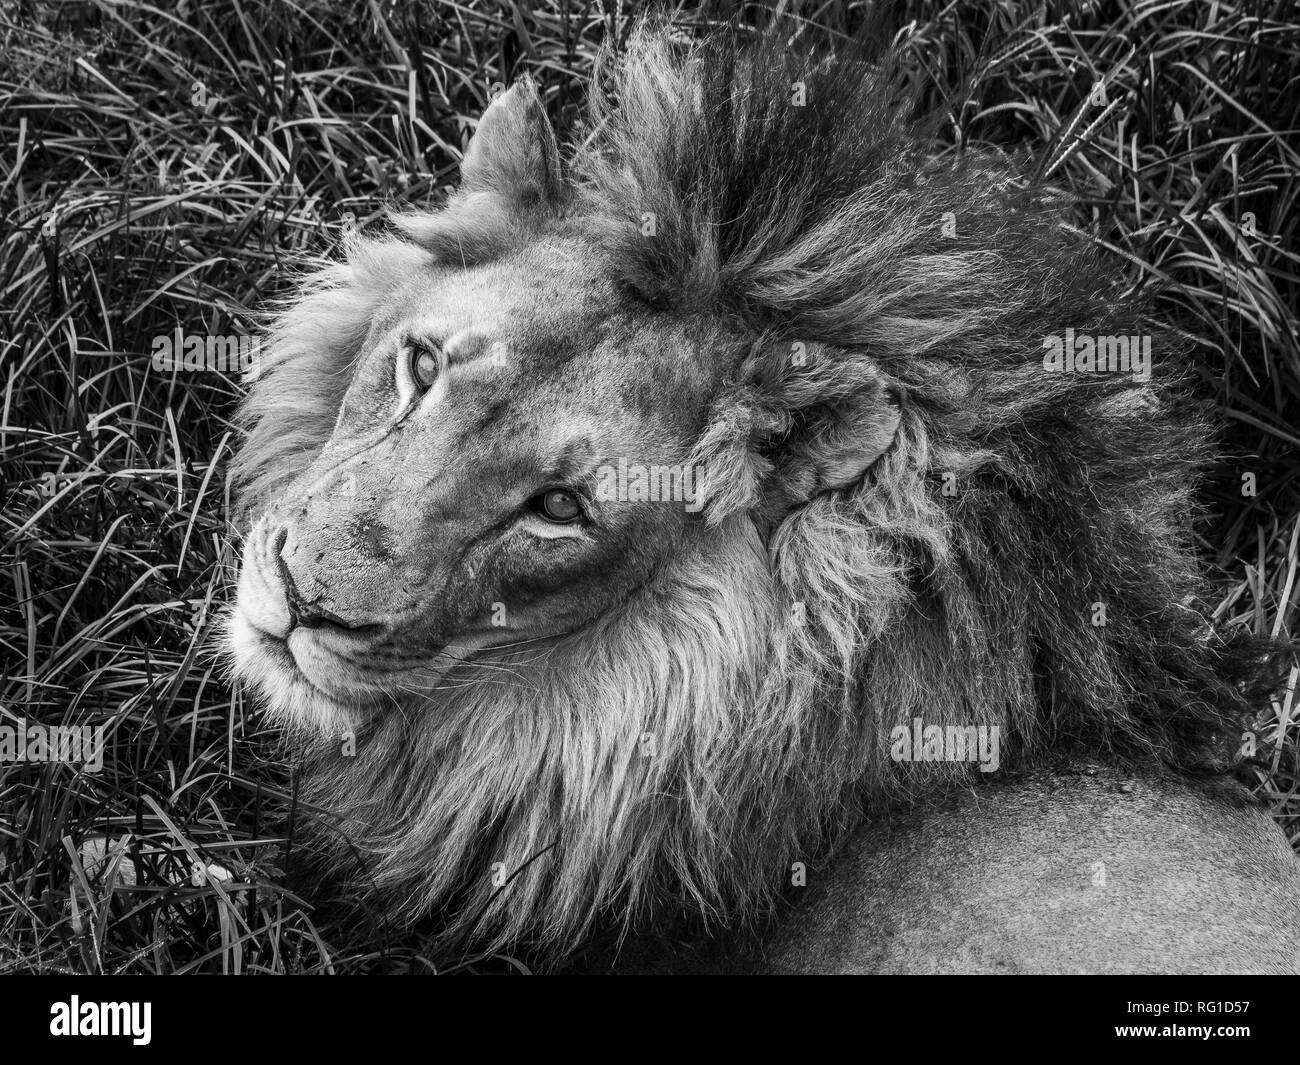 Desolation Lion's eyes are quite large with round pupils that are three times as big as a human's. - Stock Image